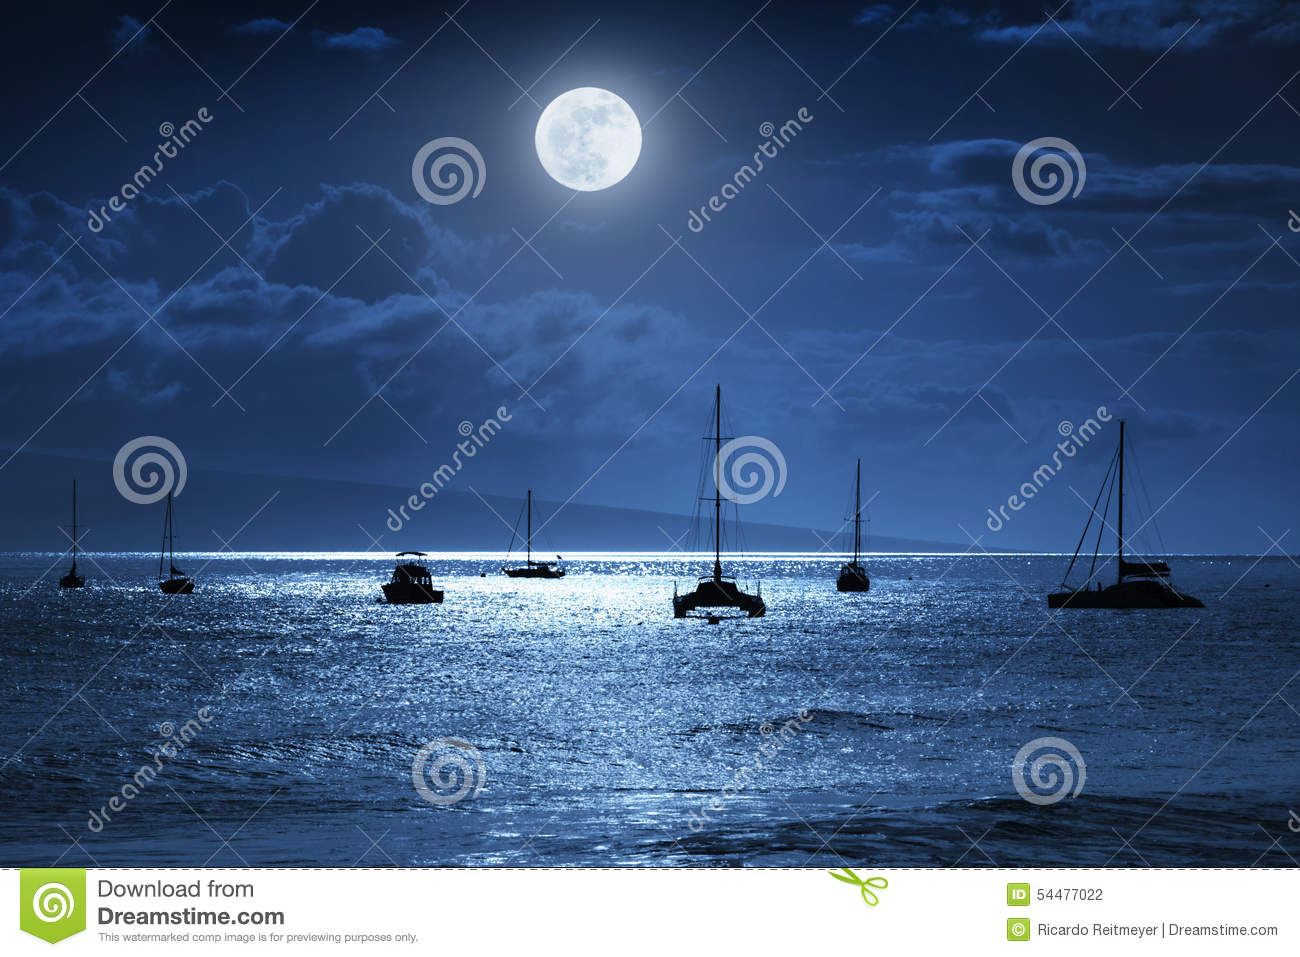 Dramatic Nighttime Ocean Scene With Beautiful Full Blue Moon in Lahaina on the island of Maui, Hawaii